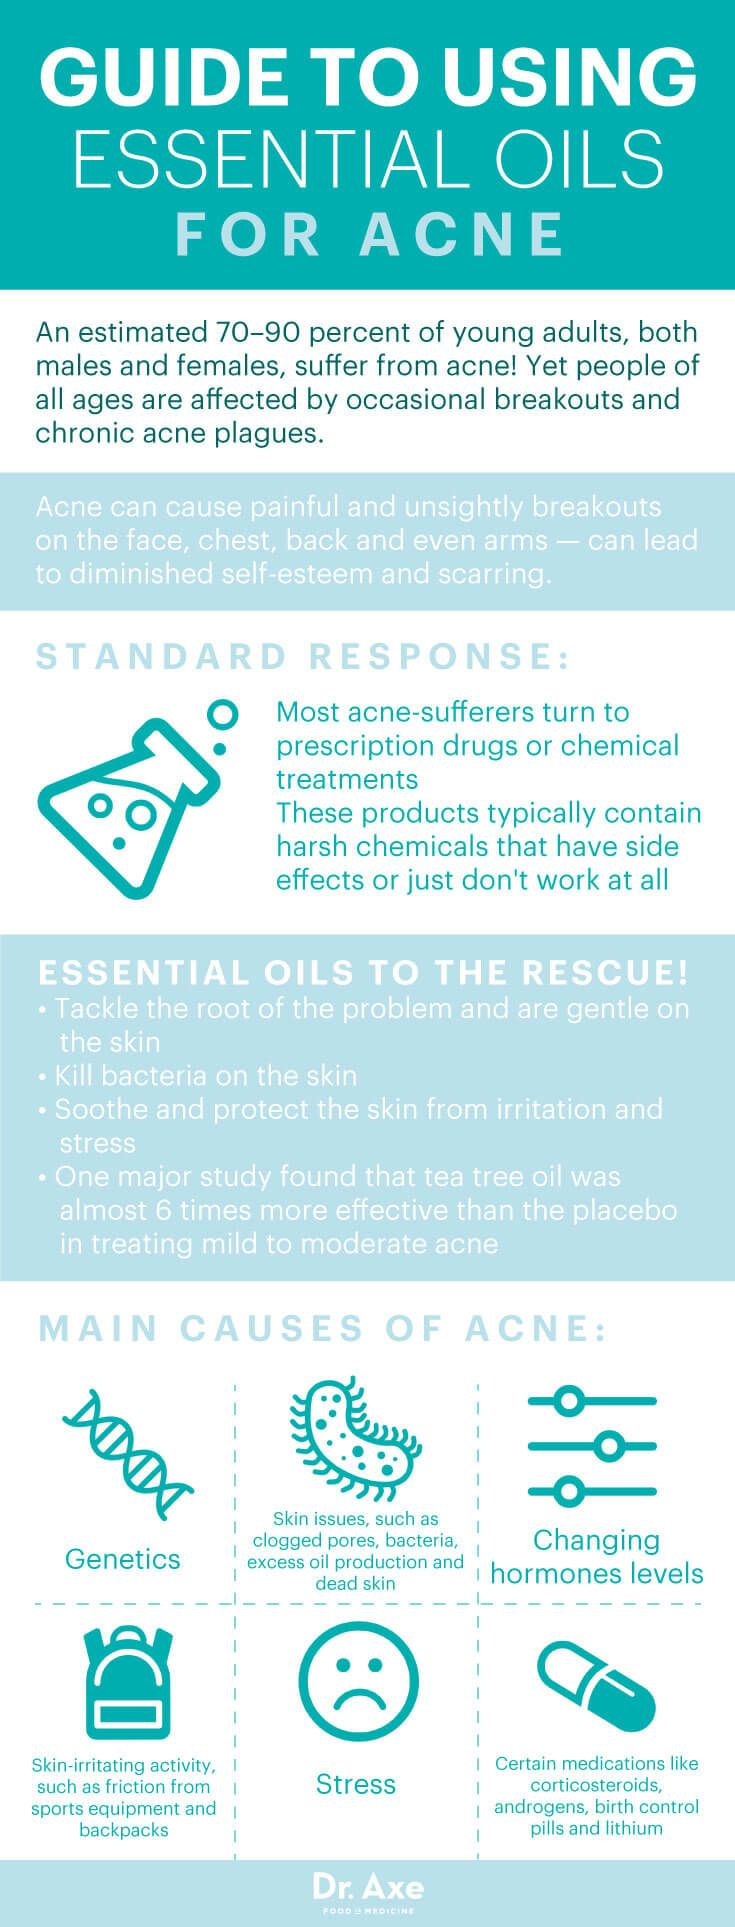 Guide to using essential oils for acne - Dr. Axe